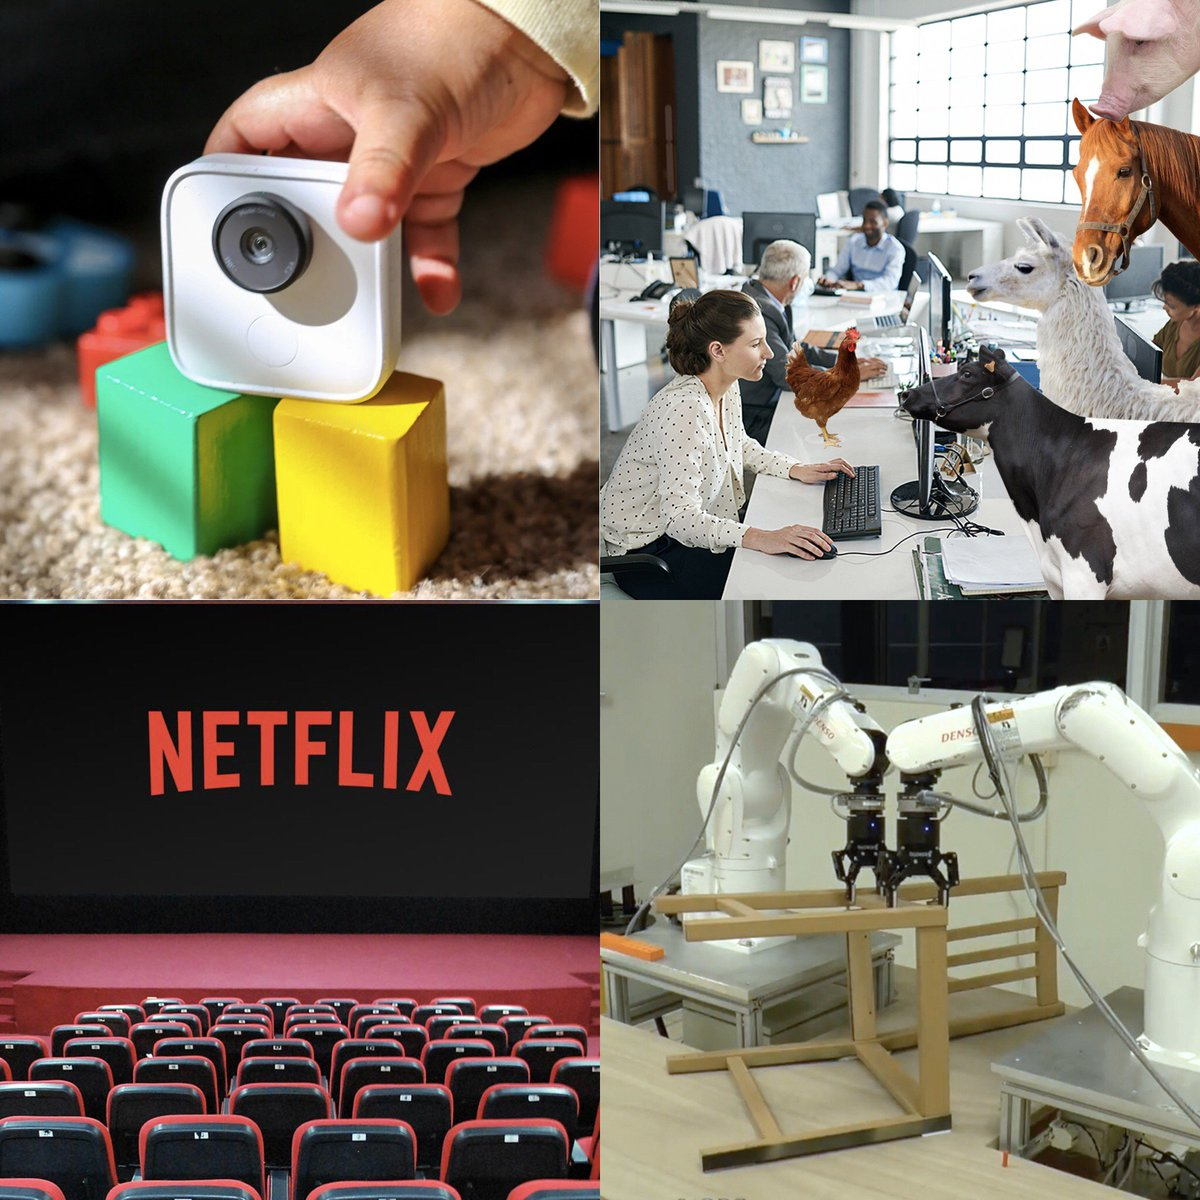 EPISODE 36: &#39;Don&#39;t Put A Pig In An Office&#39; We discuss #Google Clips Cameras, office farm animals , #Netflix movie theaters, and robots programmed to assemble #Ikea furniture. This &amp; more! Listen and subscribe at  http:// inferiormen.com  &nbsp;    #PodernFamily #universehead<br>http://pic.twitter.com/WD6Hqc5EnQ